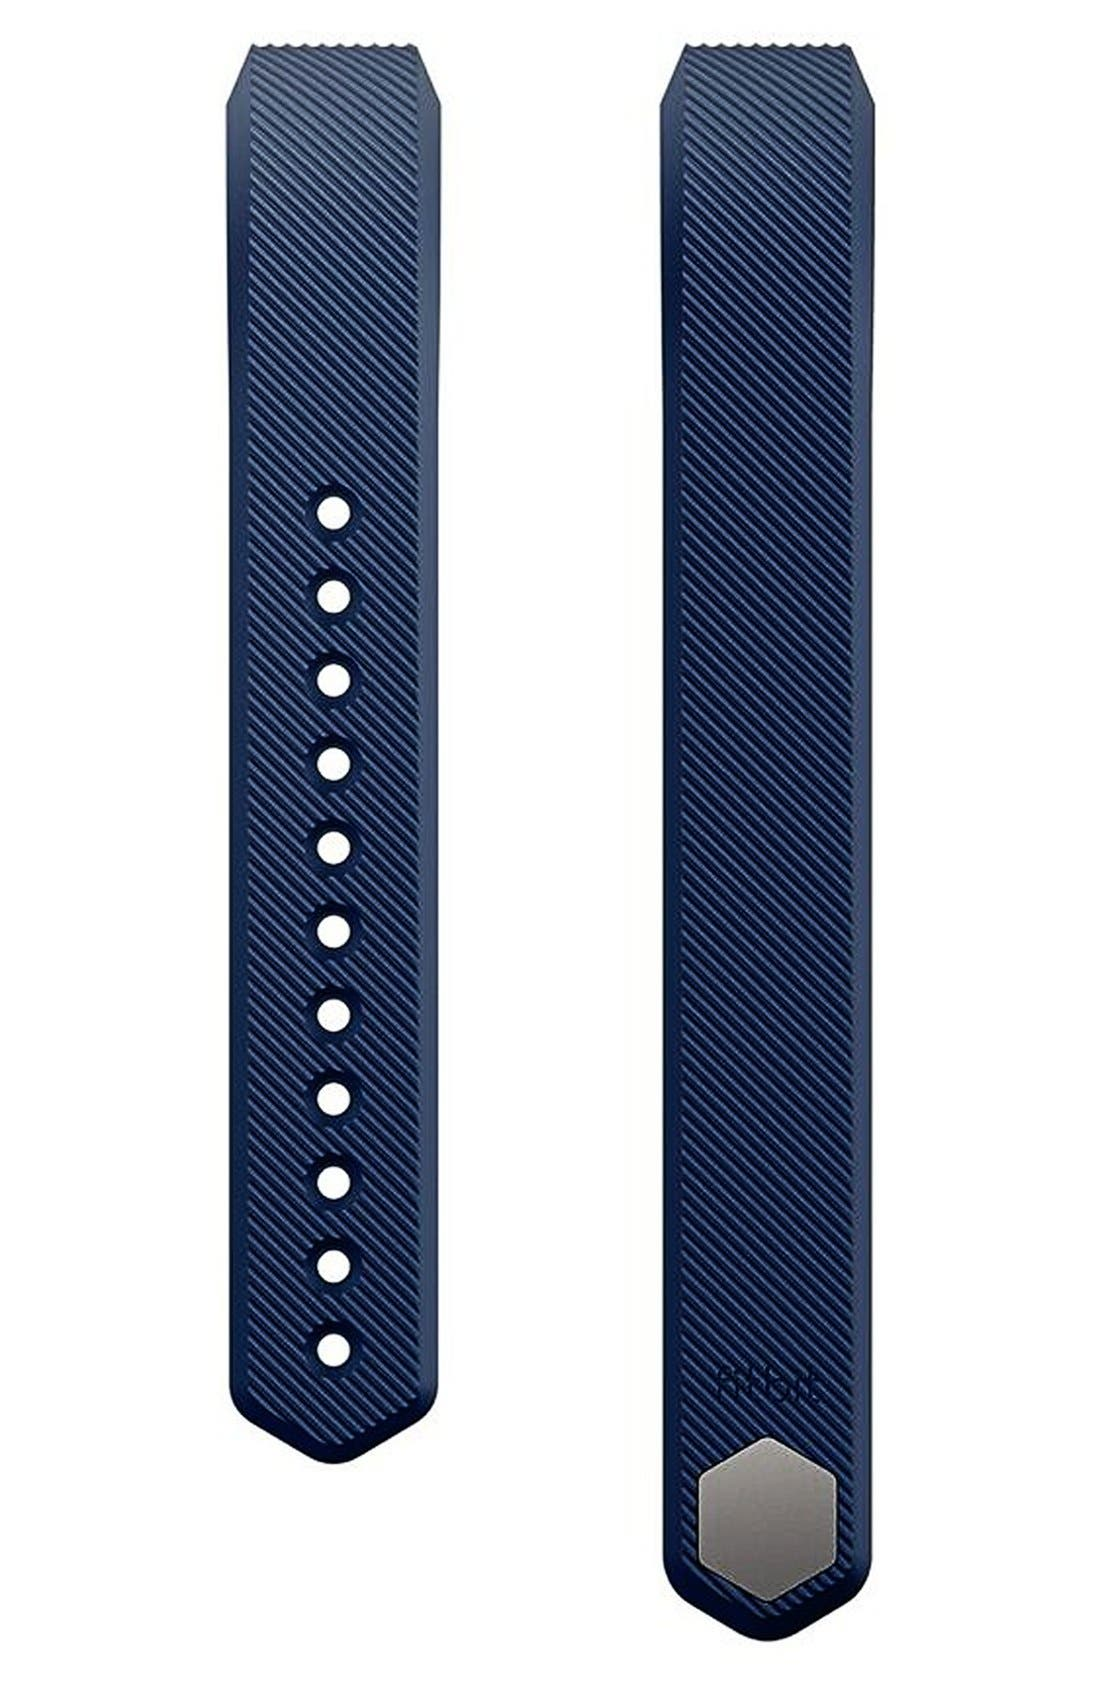 Fitbit Alta Classic Fitness Watch Band